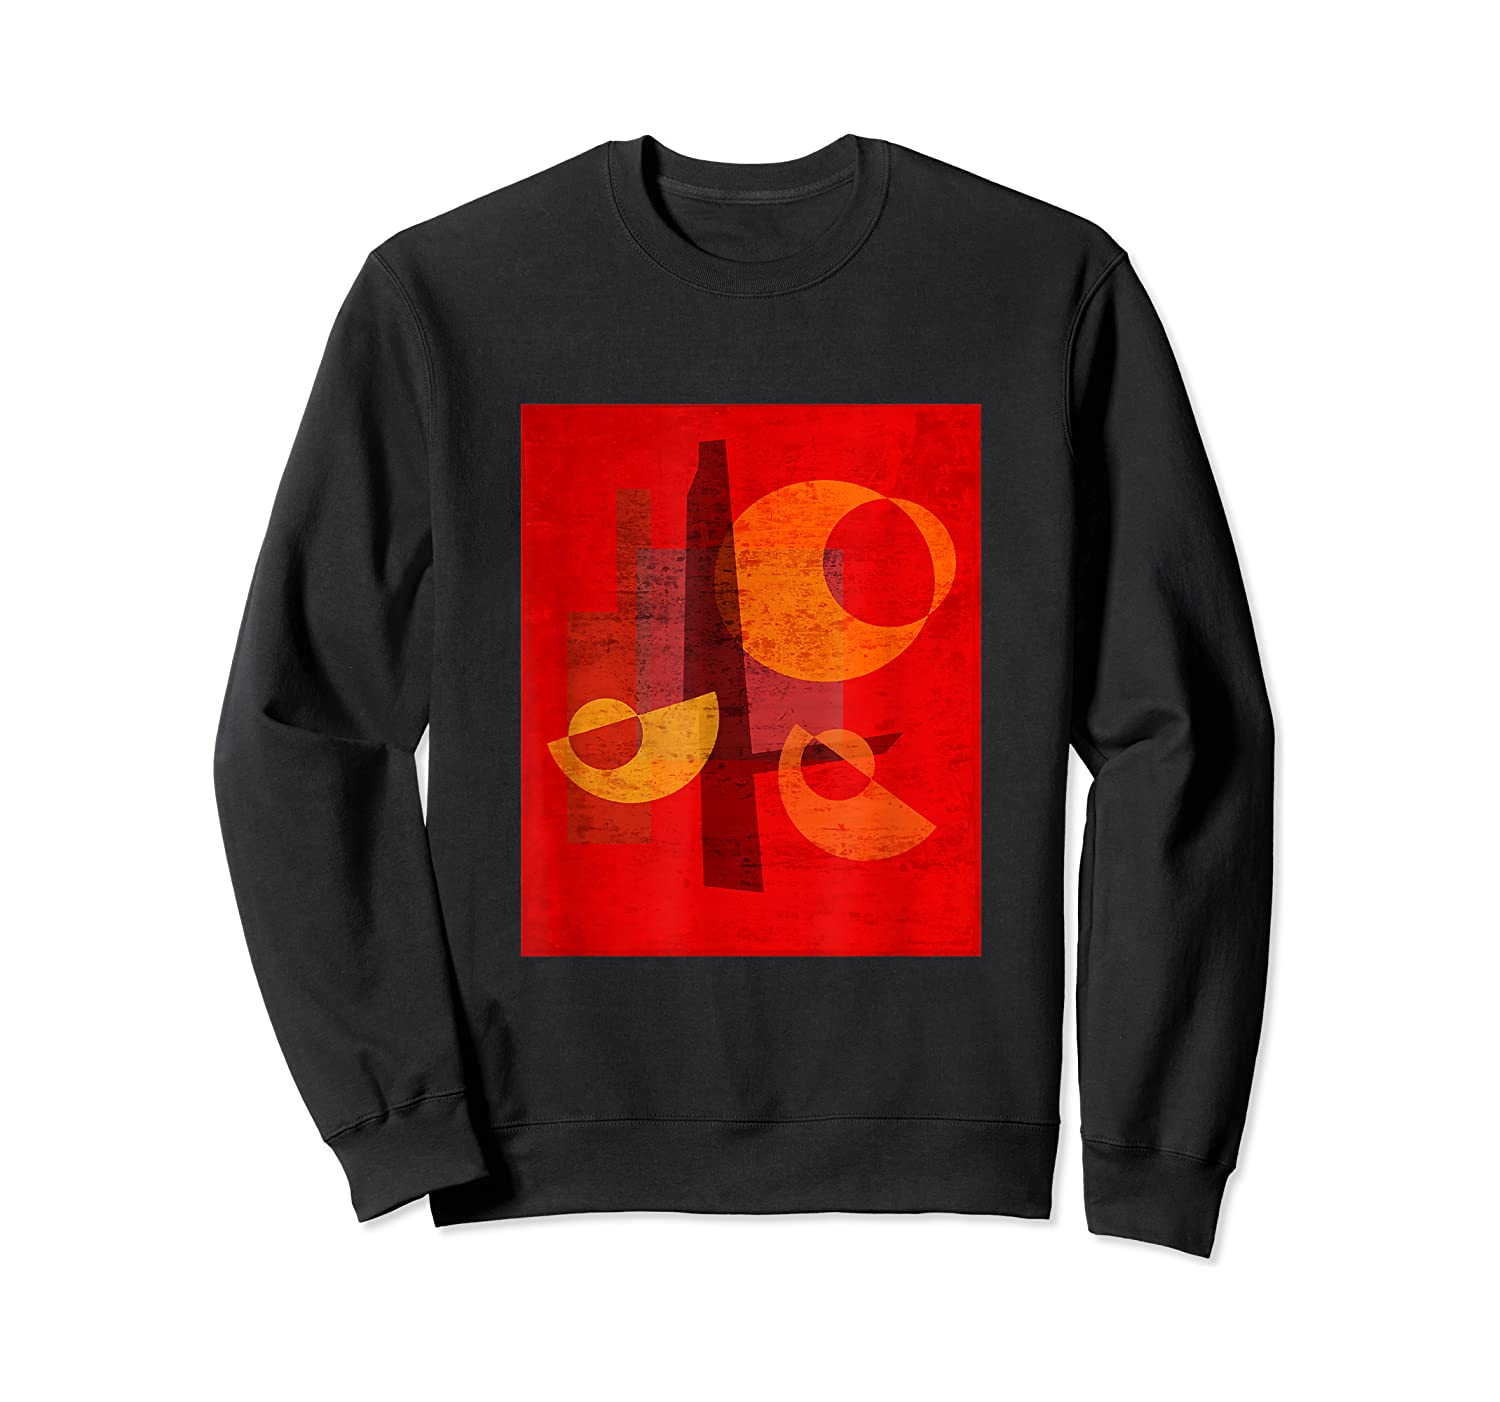 Red And Orange Abstract Shapes Shirts Crewneck Sweater